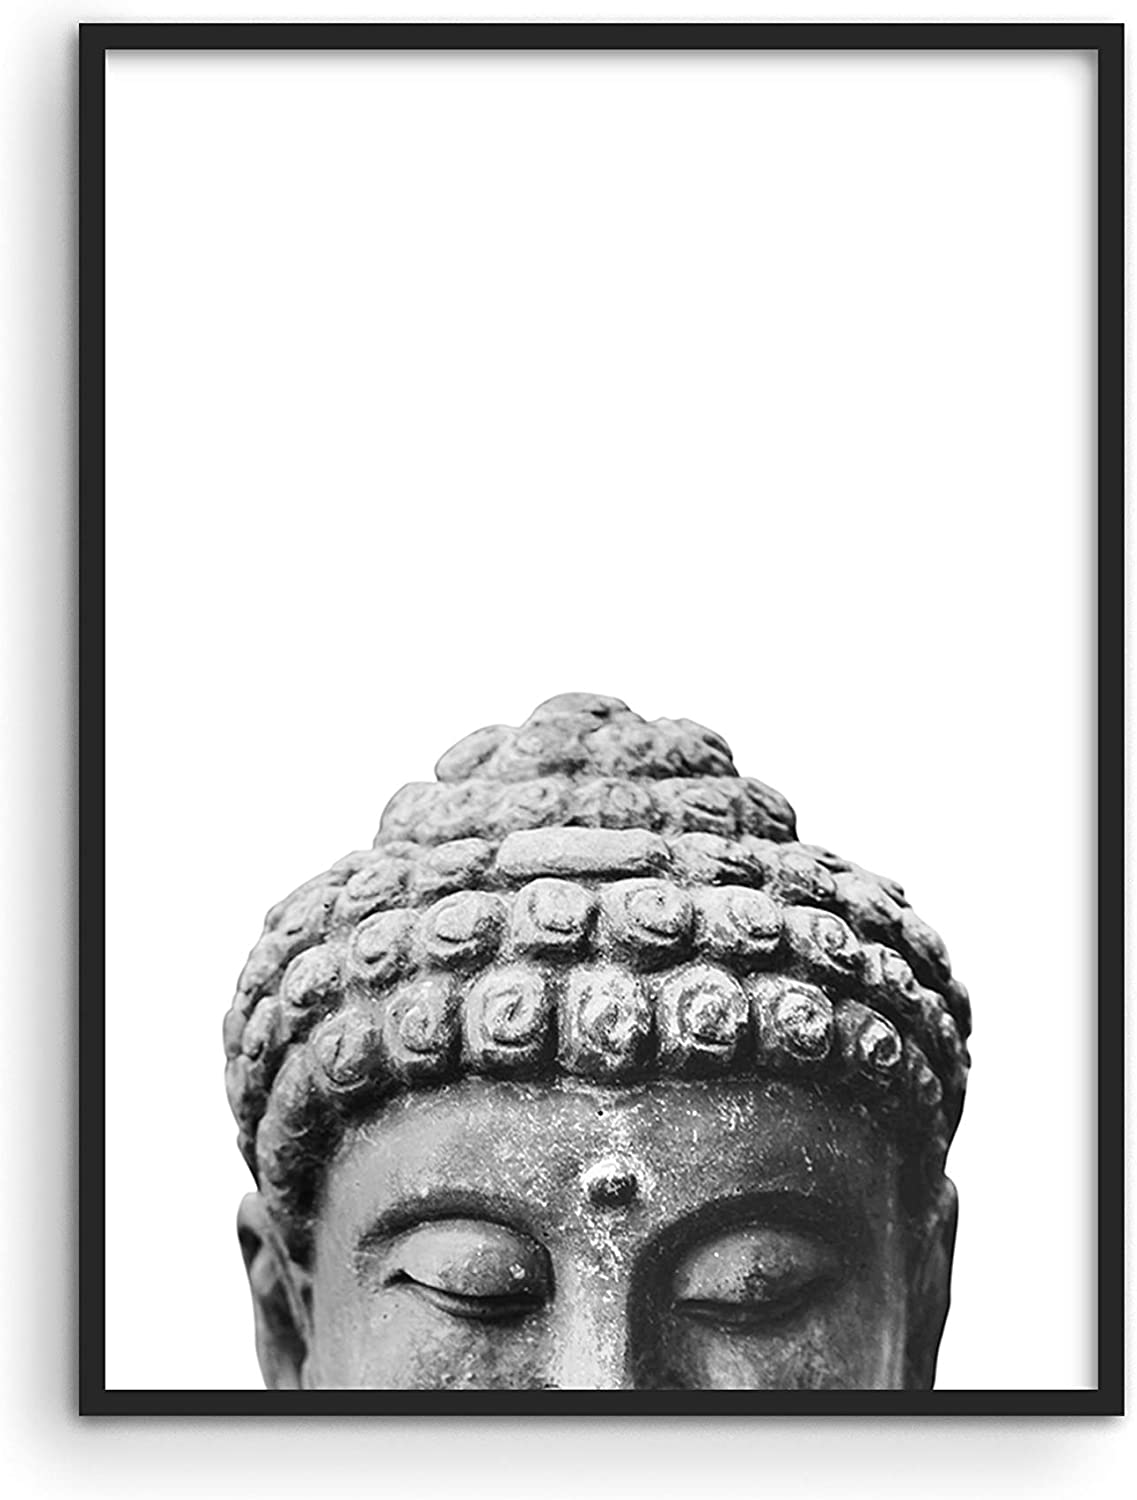 "HAUS AND HUES Buddha Wall Decor and Zen Wall Art Zen Posters Wall Art | Buddha Decor Wall Art | Namaste Wall Art | Buddha Pictures Wall Decor and Meditation Wall Art | (12"" x 16"", UNFRAMED)"